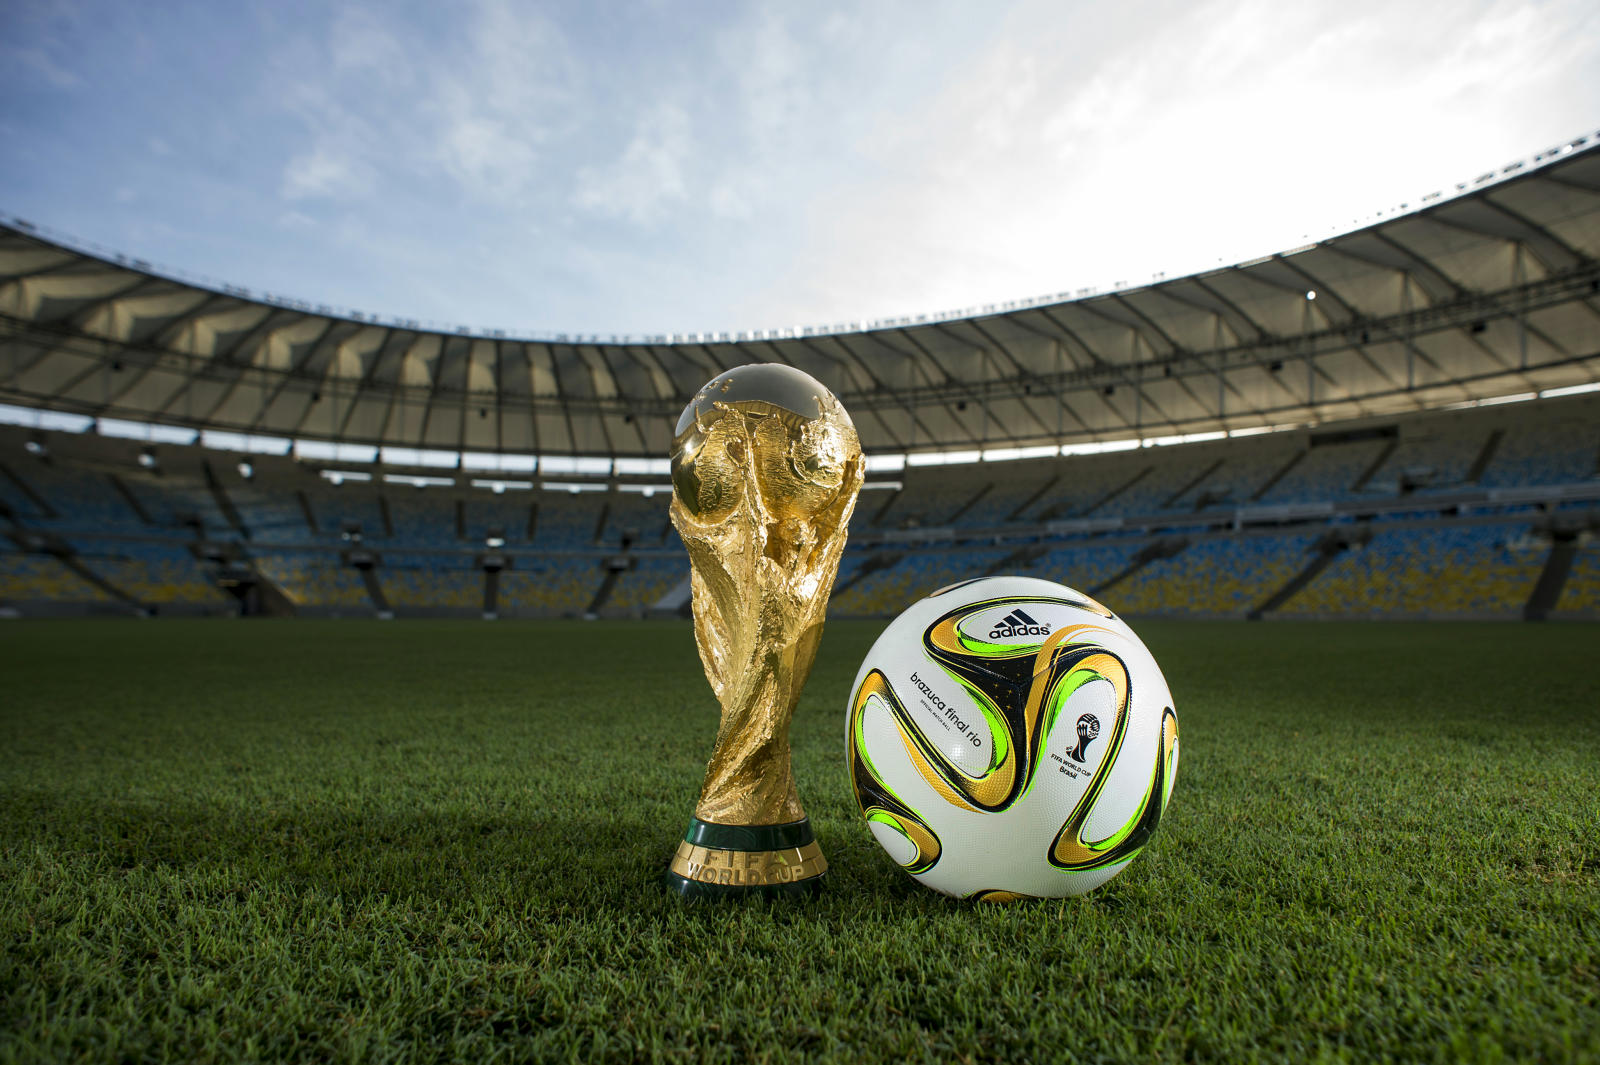 Adidas Brazuca 2014 World Cup Final Rio Ball Released ...